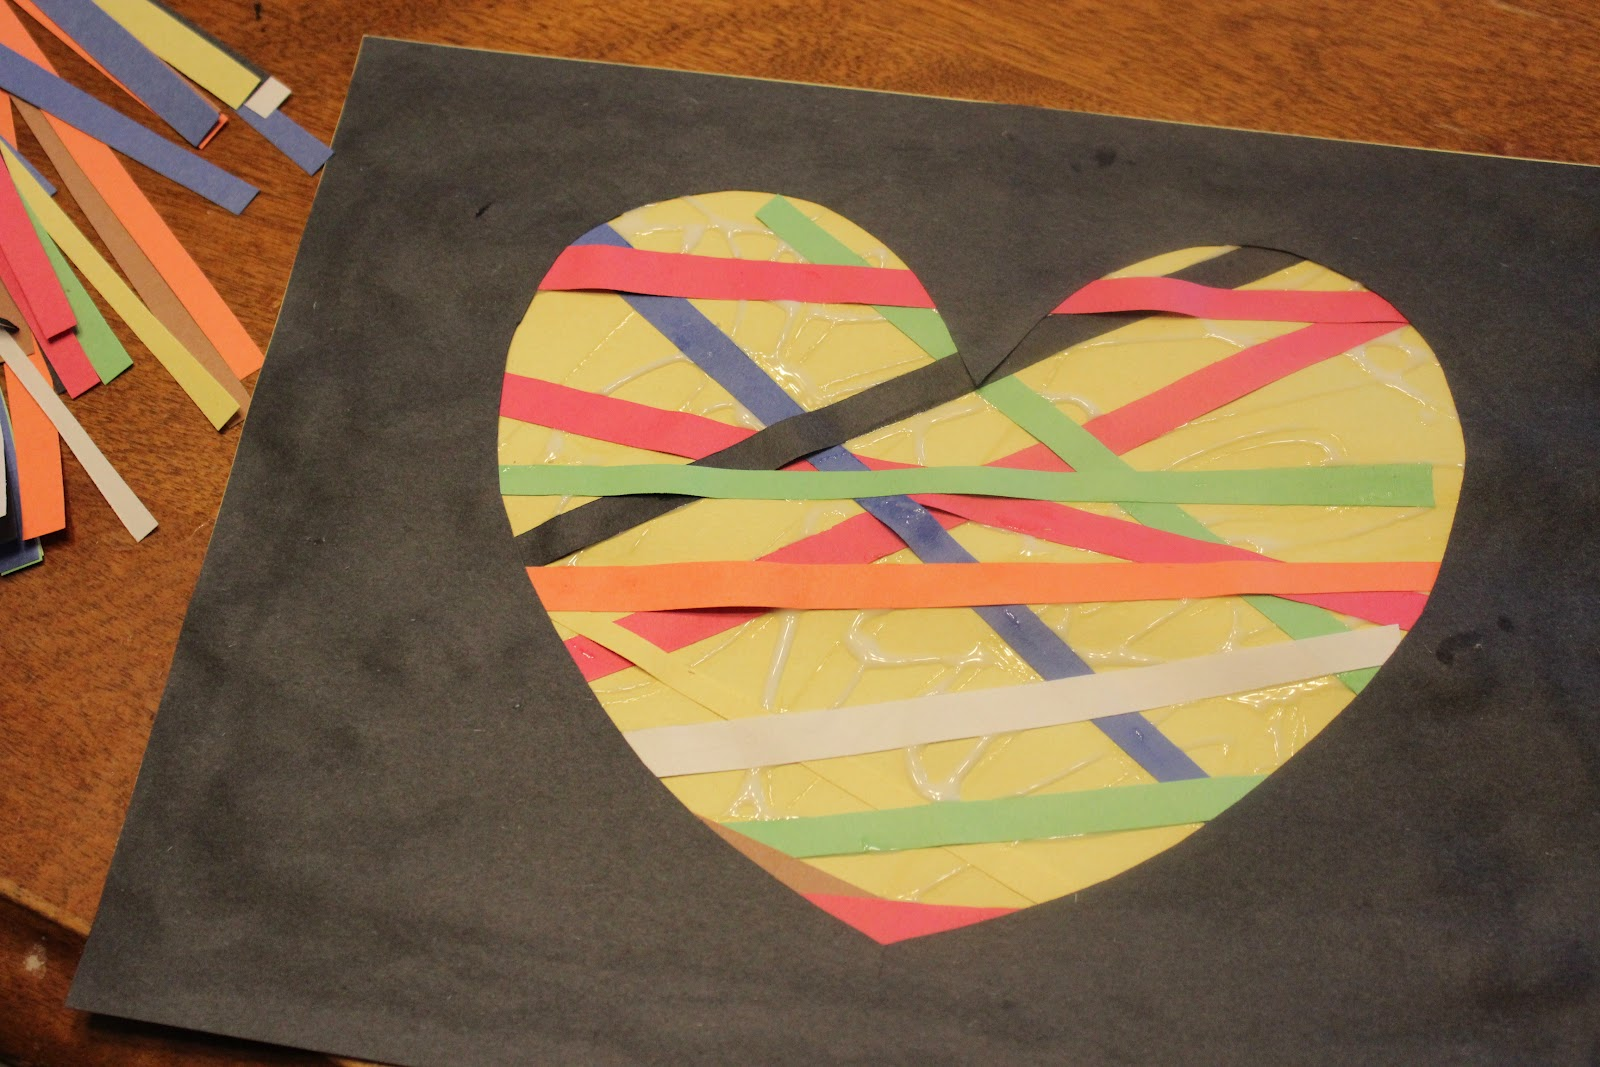 construction paper crafts Archives - See Mommy Doing